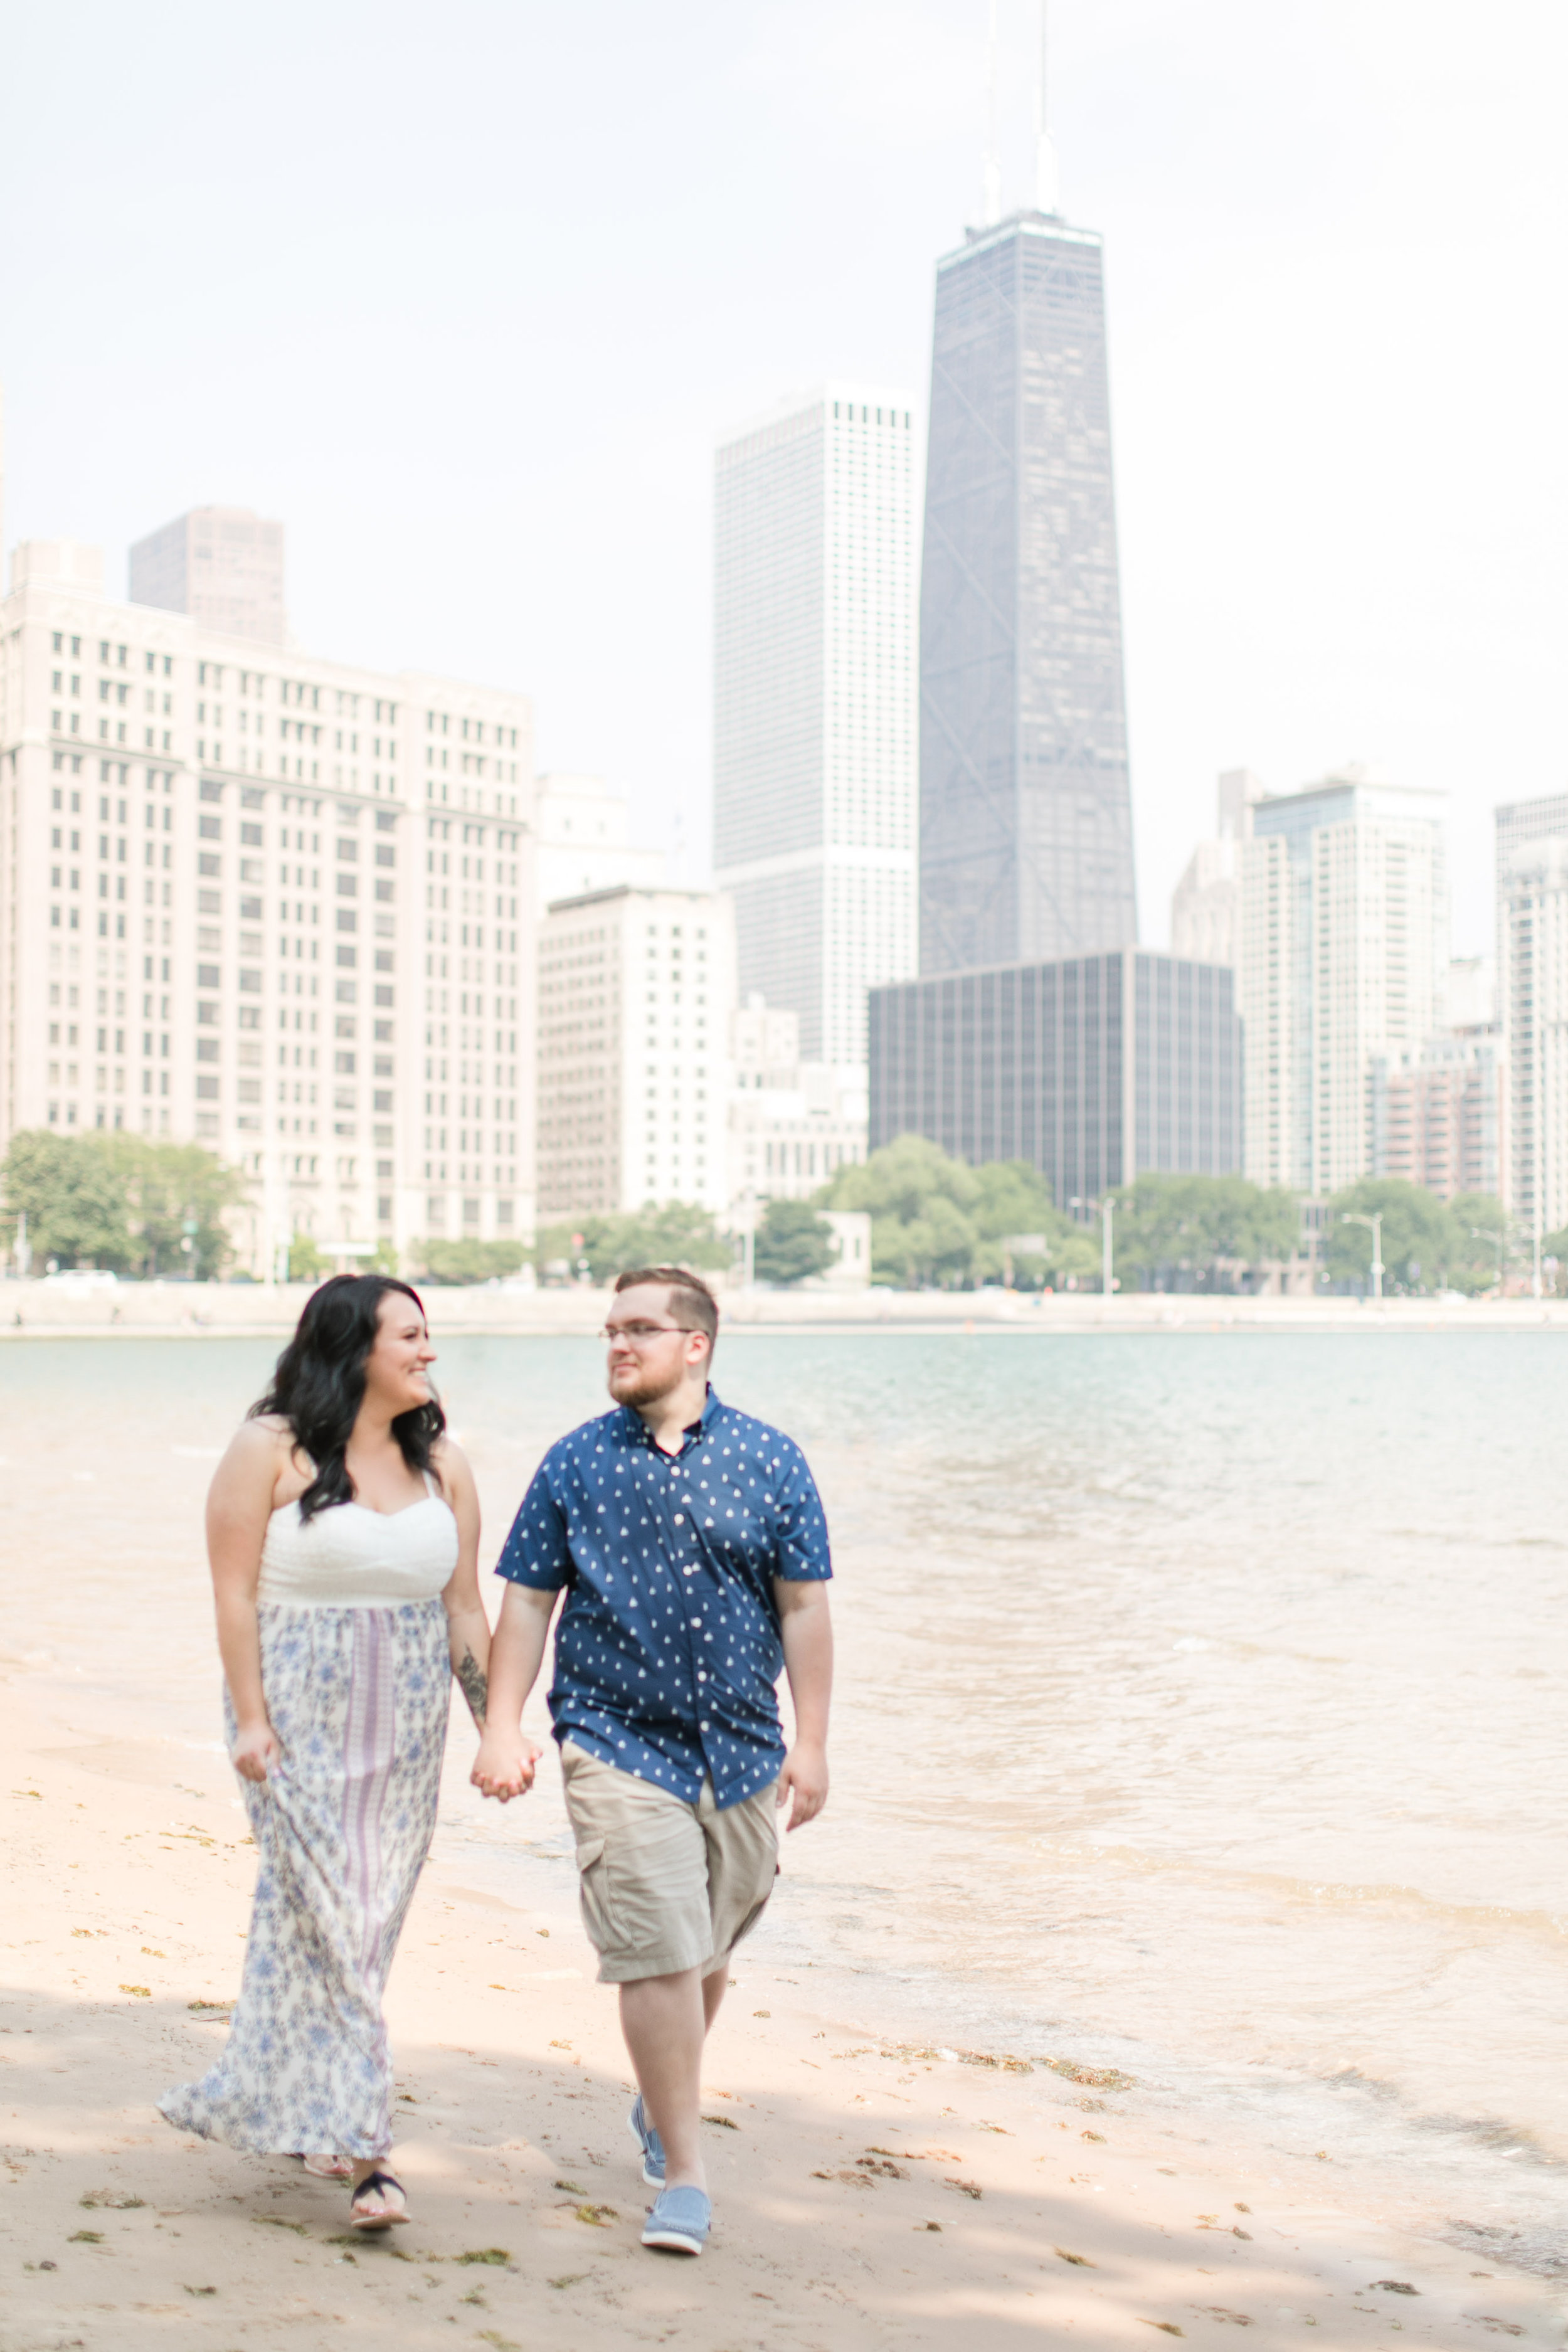 Summer downtown Chicago engagement session captured by Megan Goggins Photography. Find more inspiration at CHItheeWED.com!